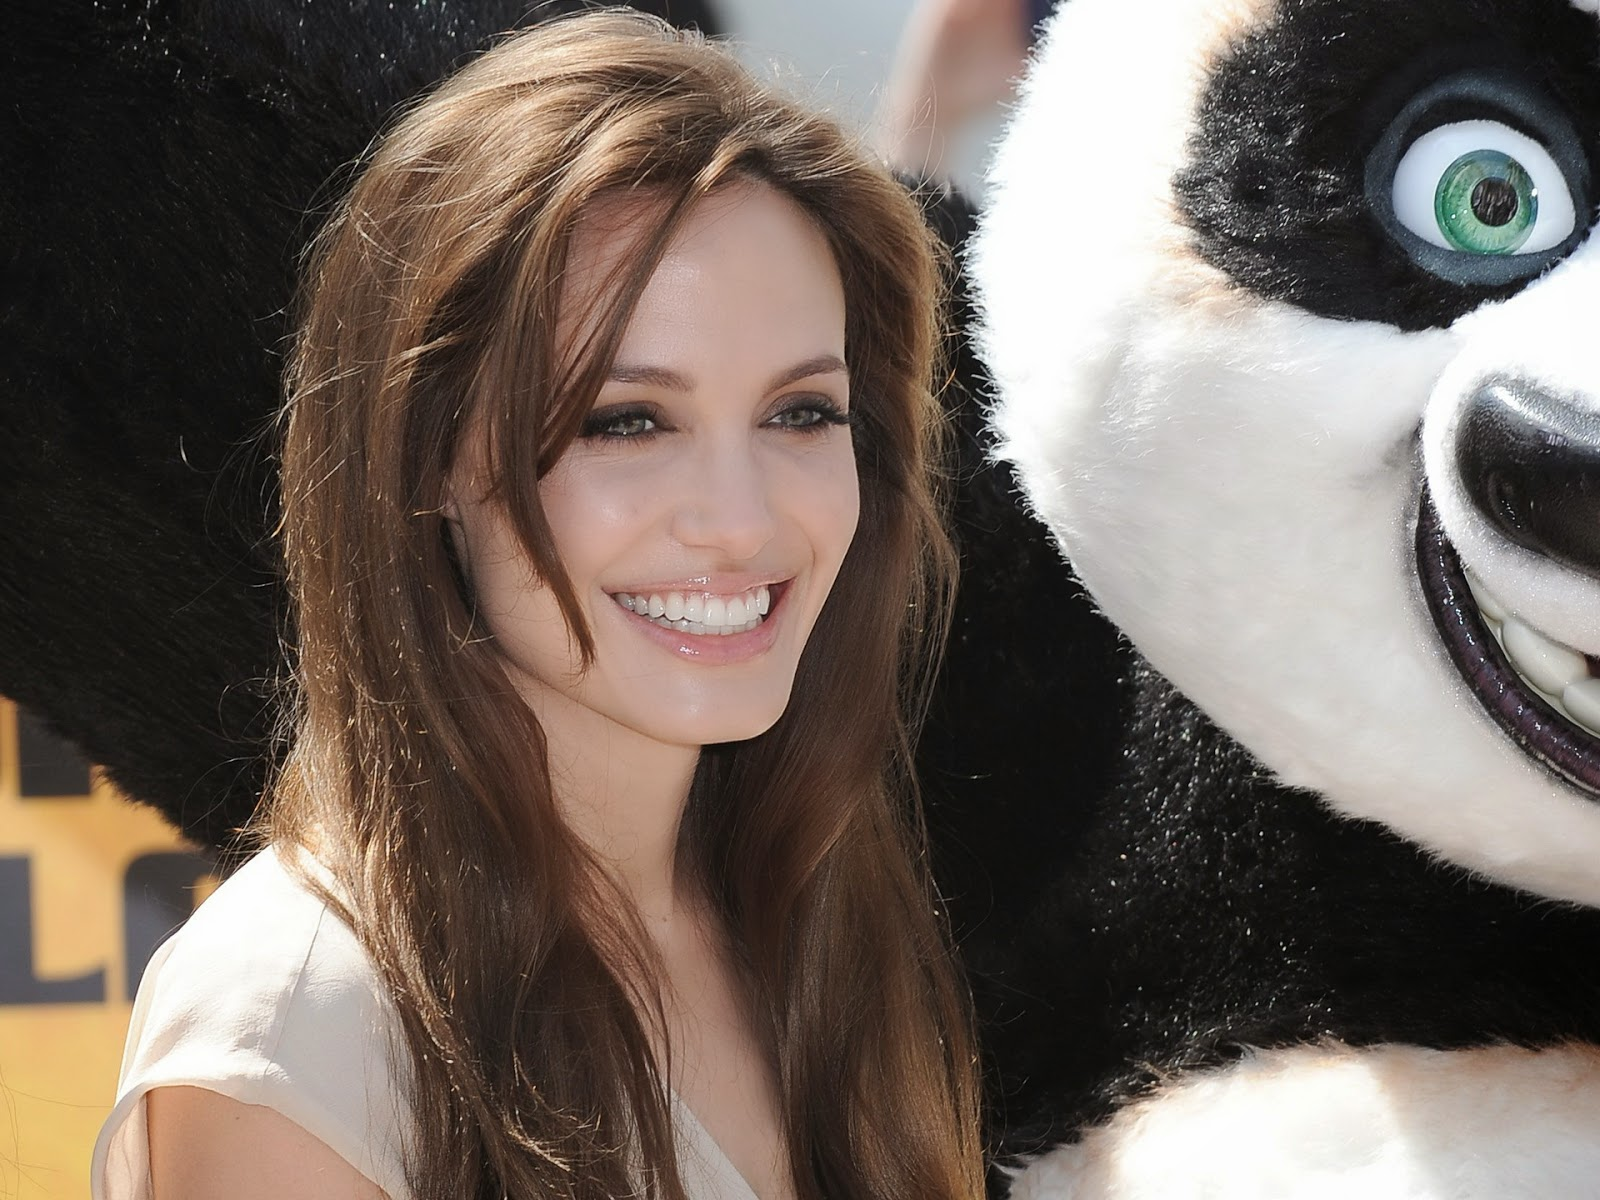 Angelina Jolie Hd Wallpapers: ALL STAR HD WALLPAPERS DOWNLOAD: Angelina Jolie HD Wallpapers